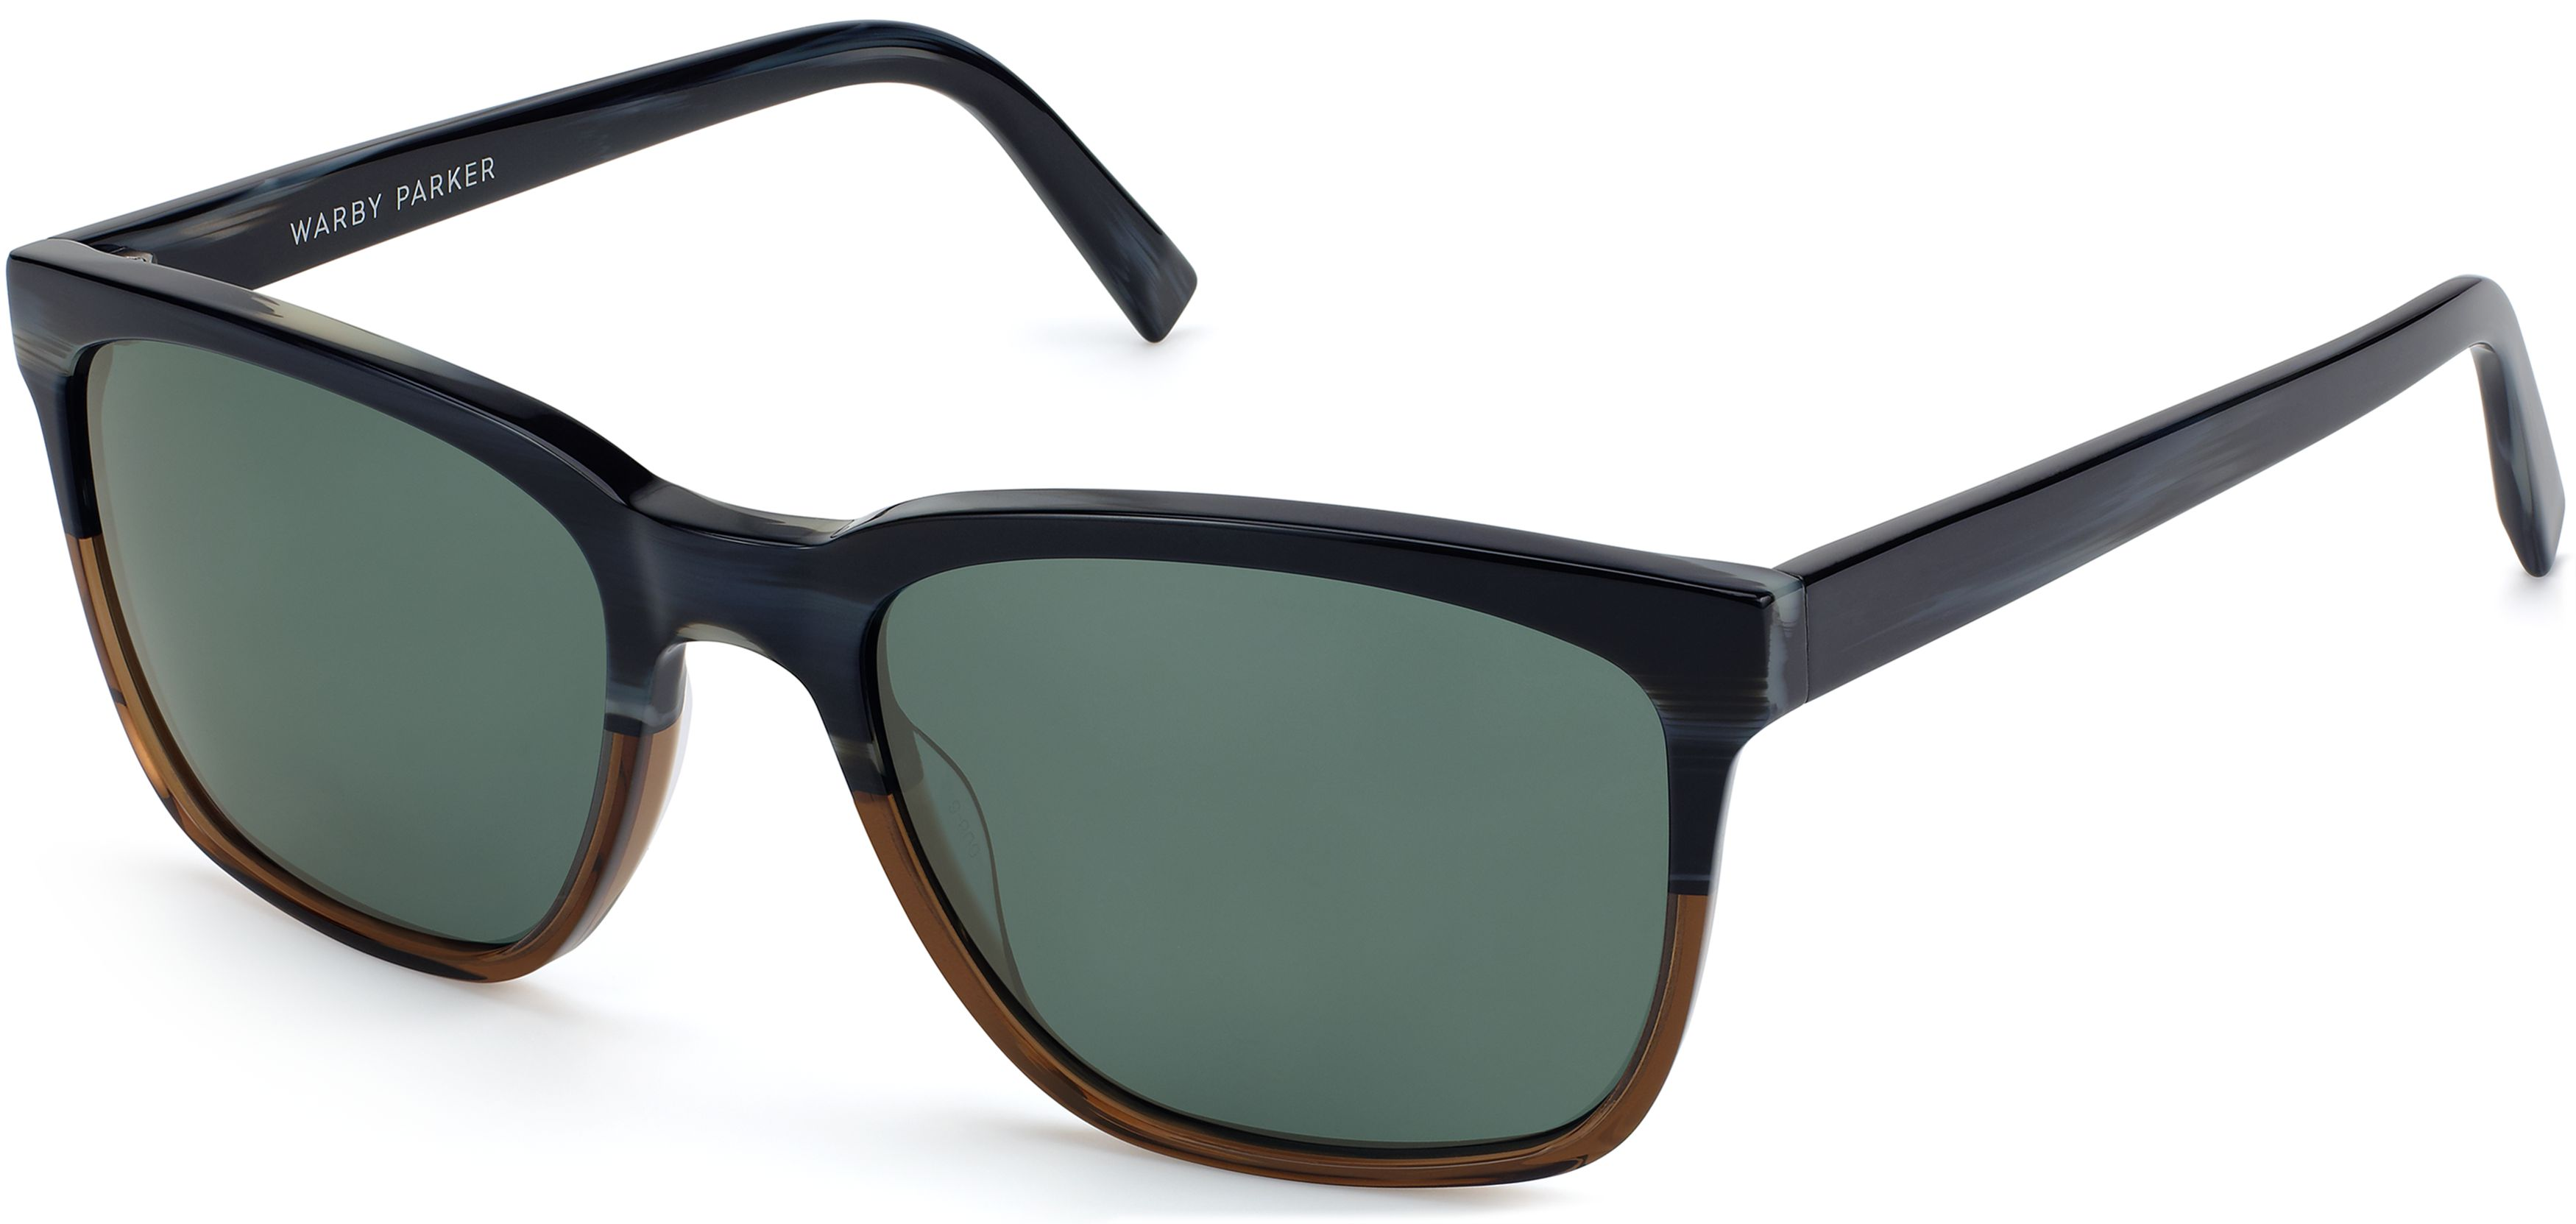 1b178761b91 Barkley Wide Sunglasses in Antique Shale Fade with Green Grey lenses for Men